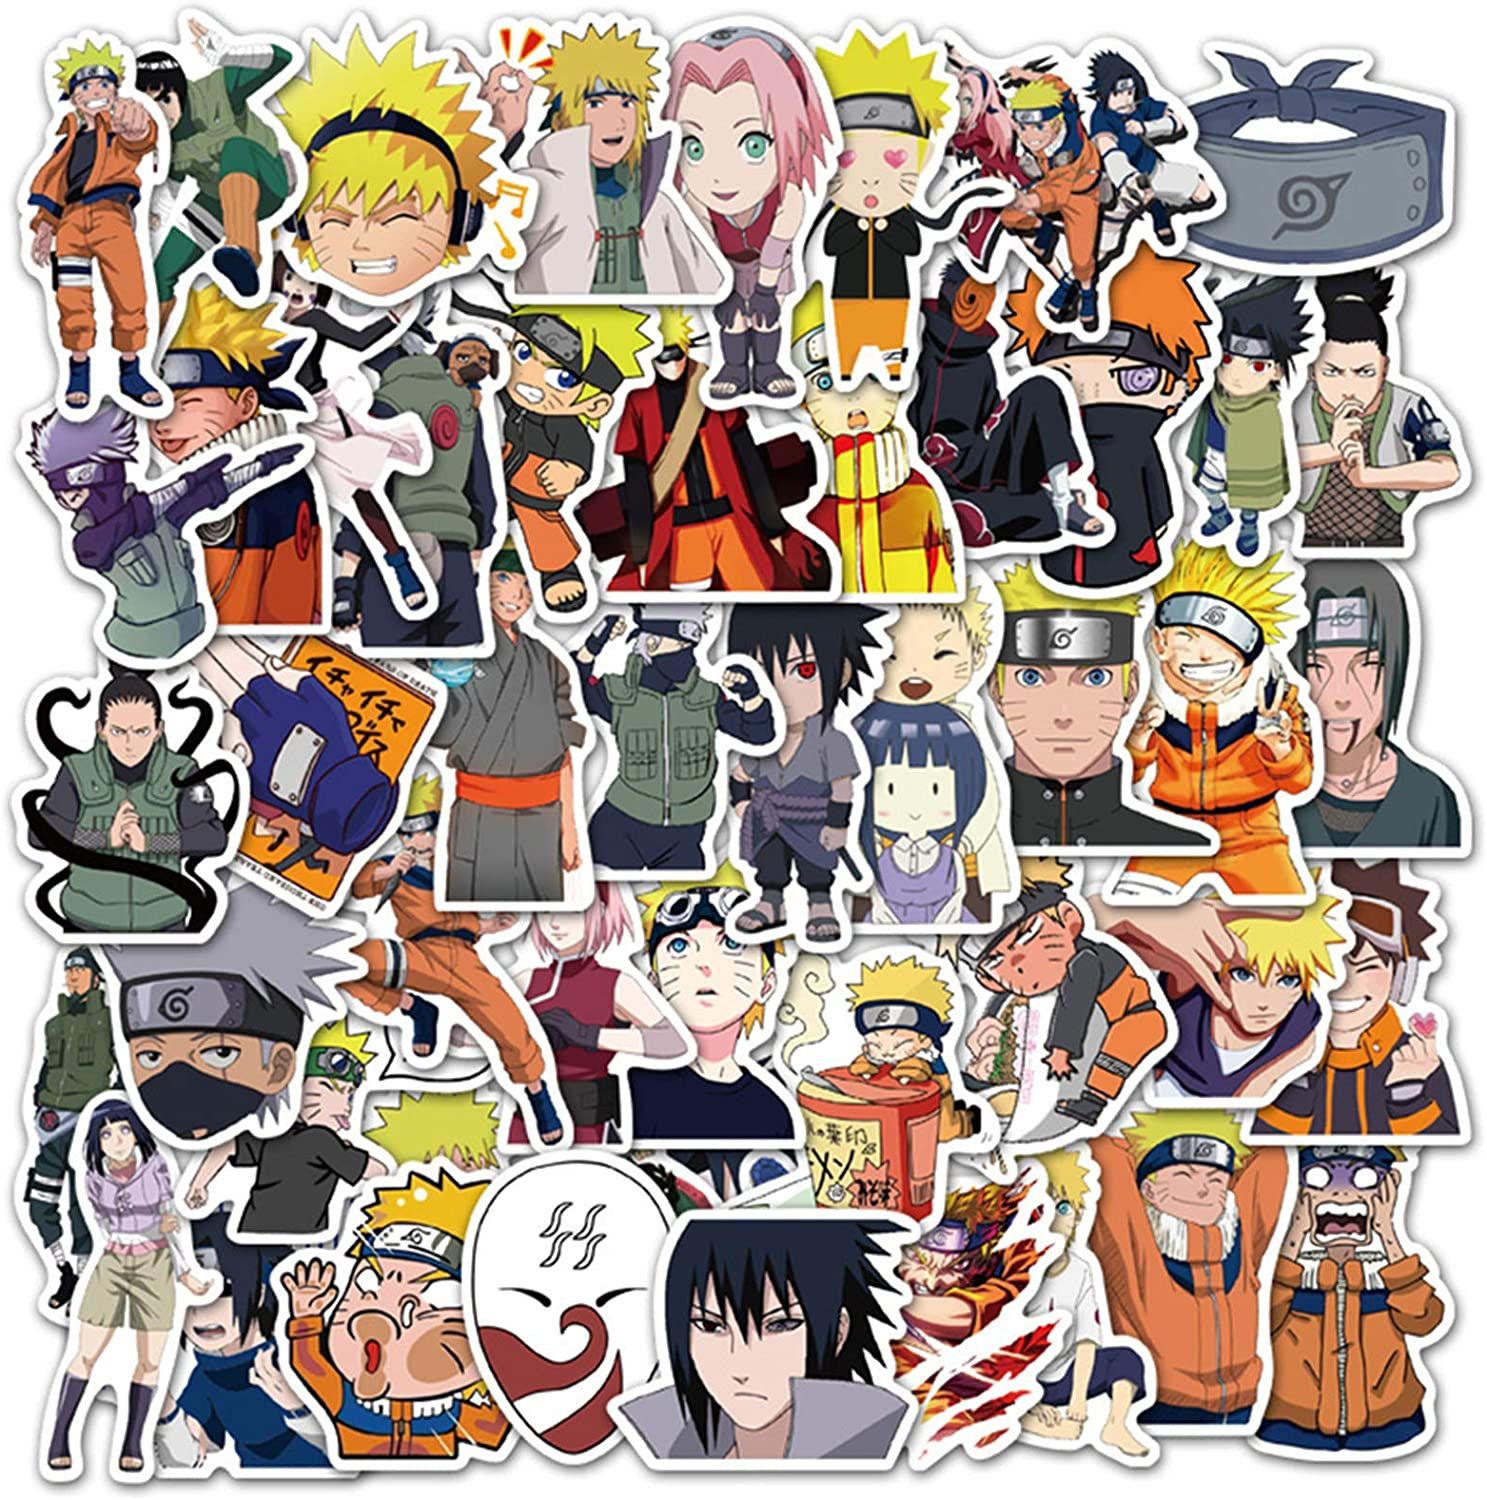 Acekar Naruto Stickers[50pcs] Anime Waterproof for Decal, Laptop Hydro Flask Water Bottle Car Cup Computer Guitar Skateboard Luggage Bike Bumper, Kid Gift (Naruto)